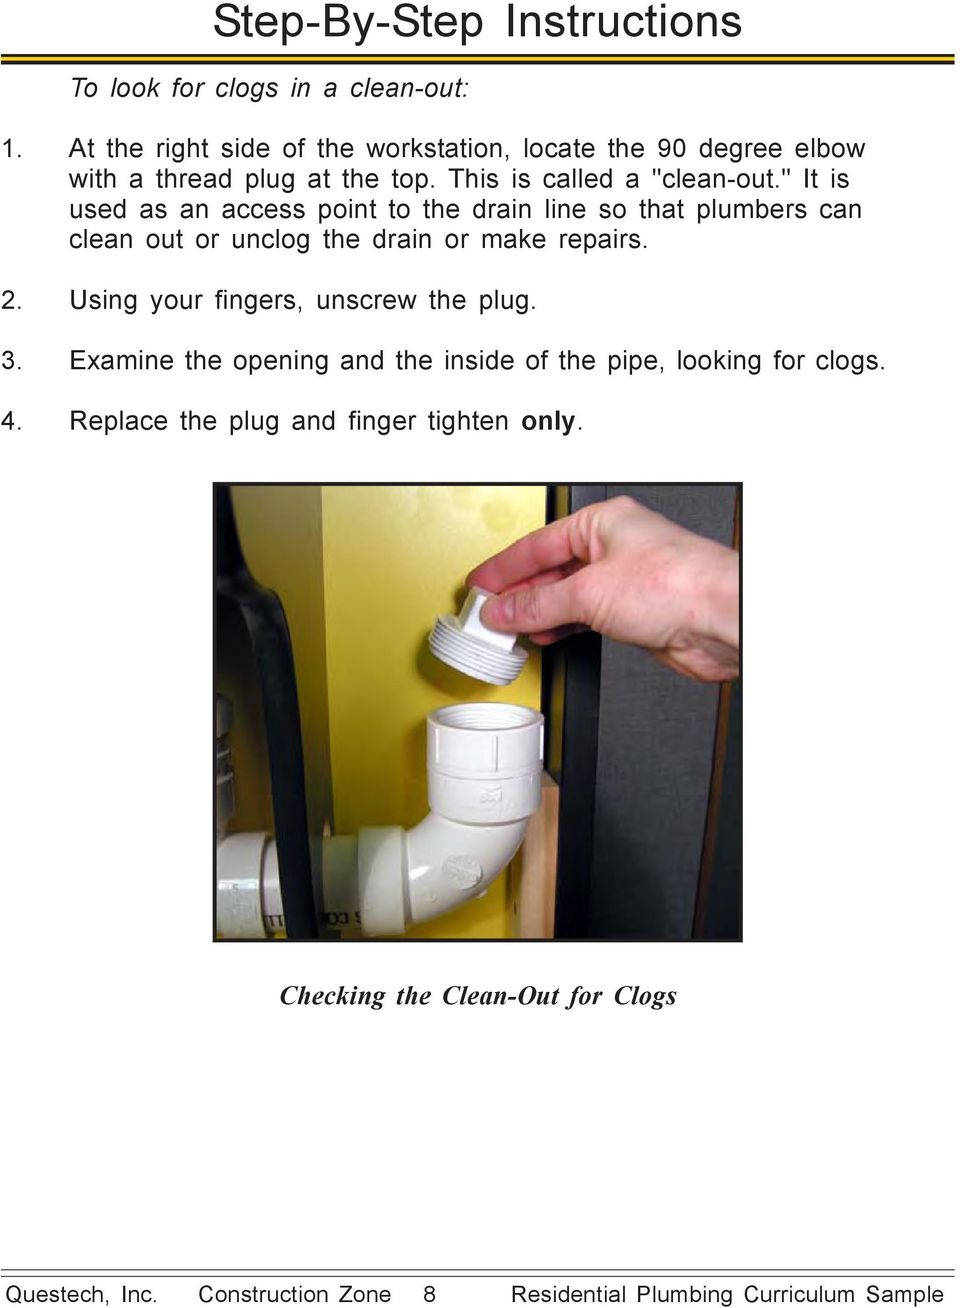 """ It is used as an access point to the drain line so that plumbers can clean out or unclog the drain or make repairs. 2."